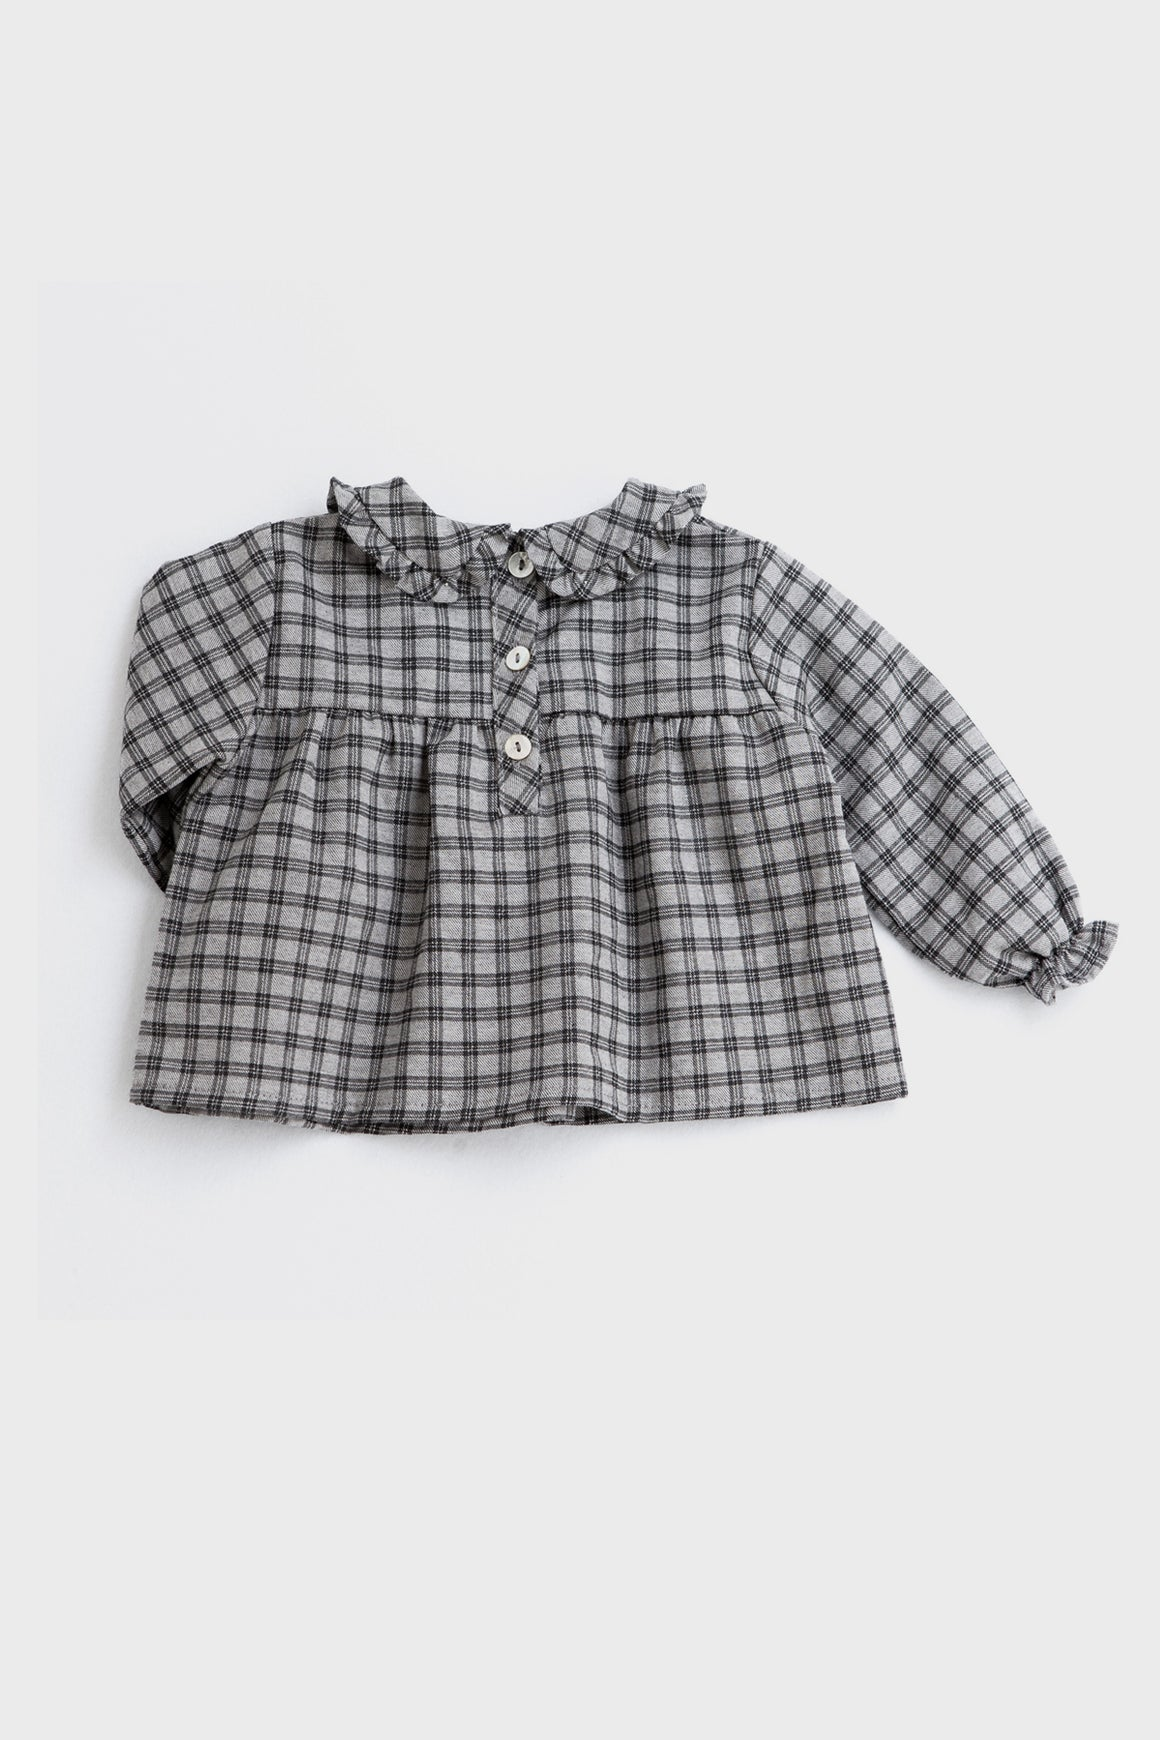 Tocoto Vintage Baby Girls Checkered Shirt